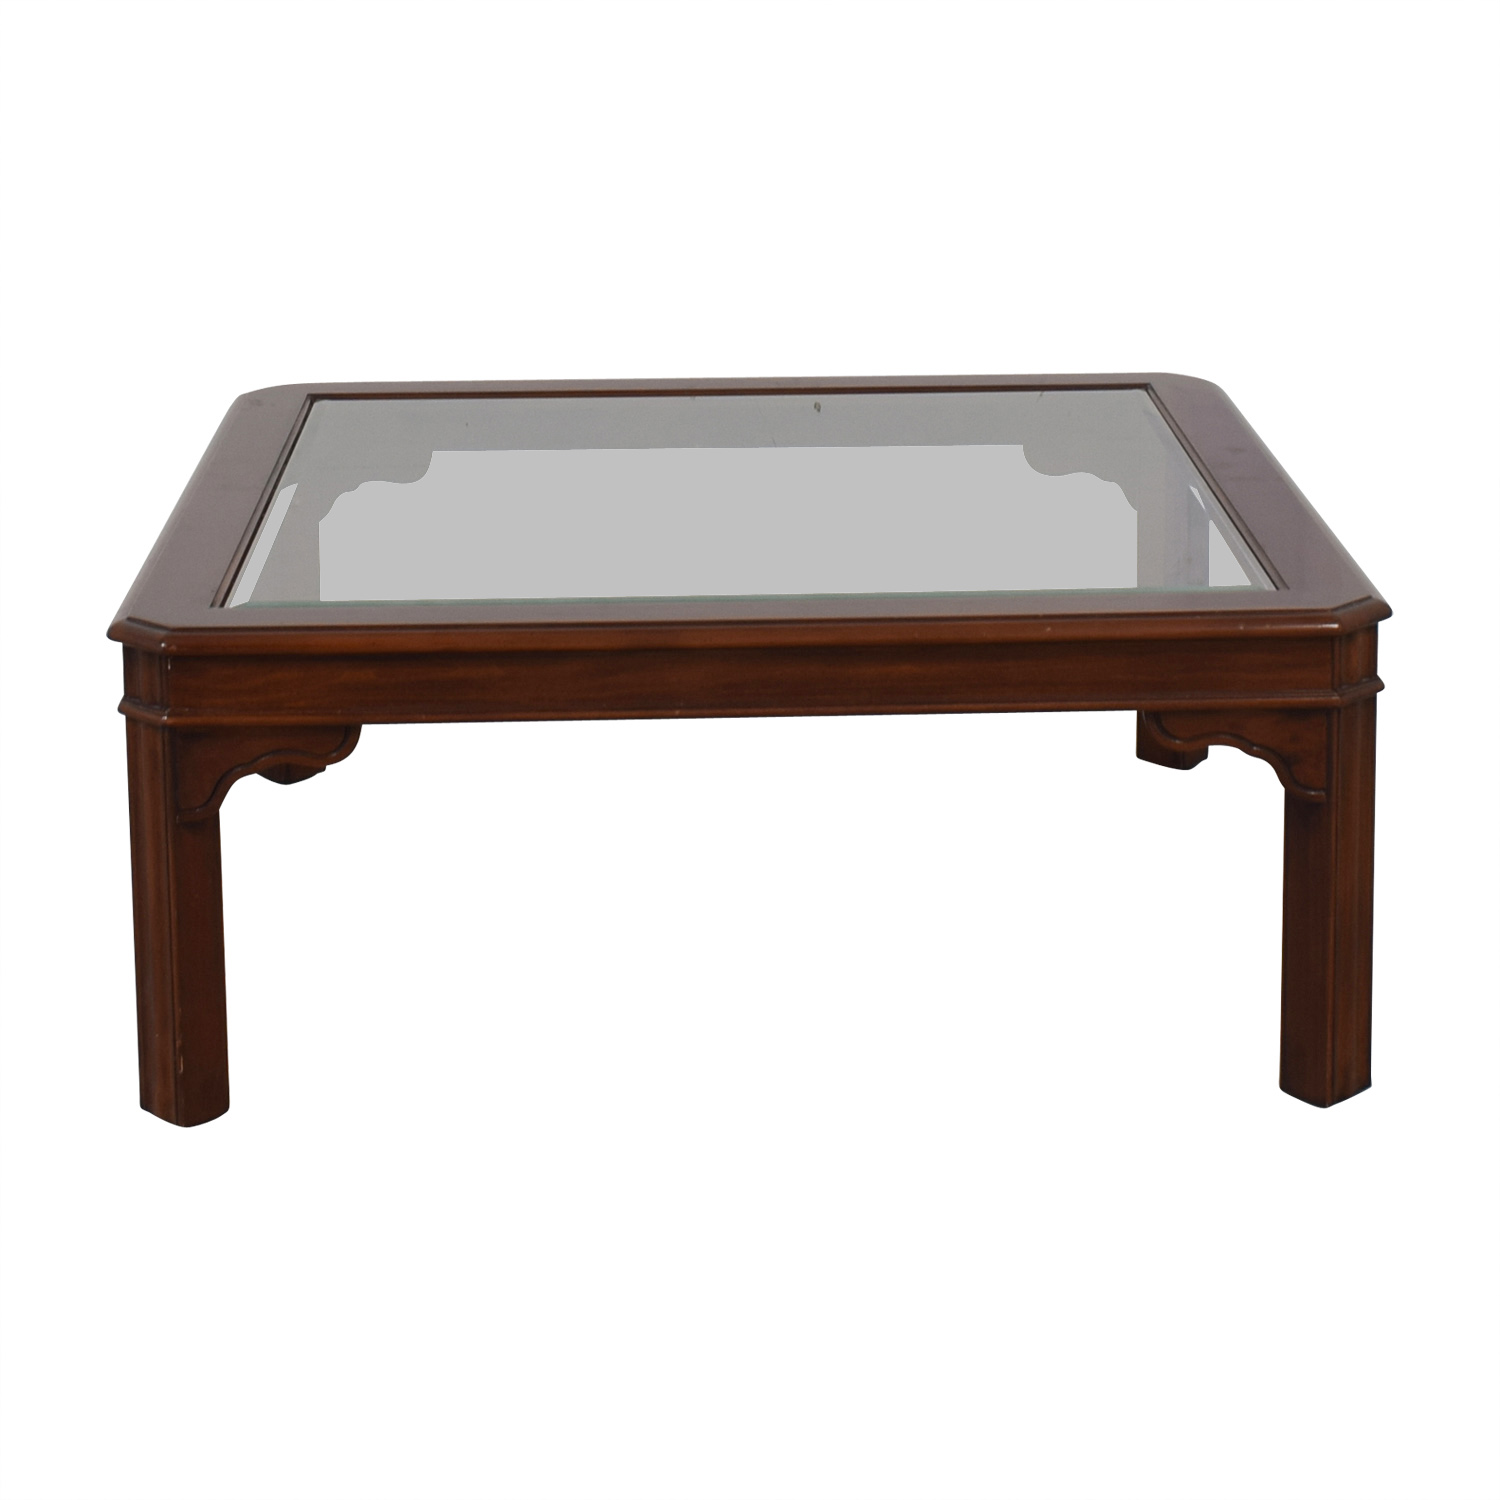 Glass Top and Wood Coffee Table dimensions